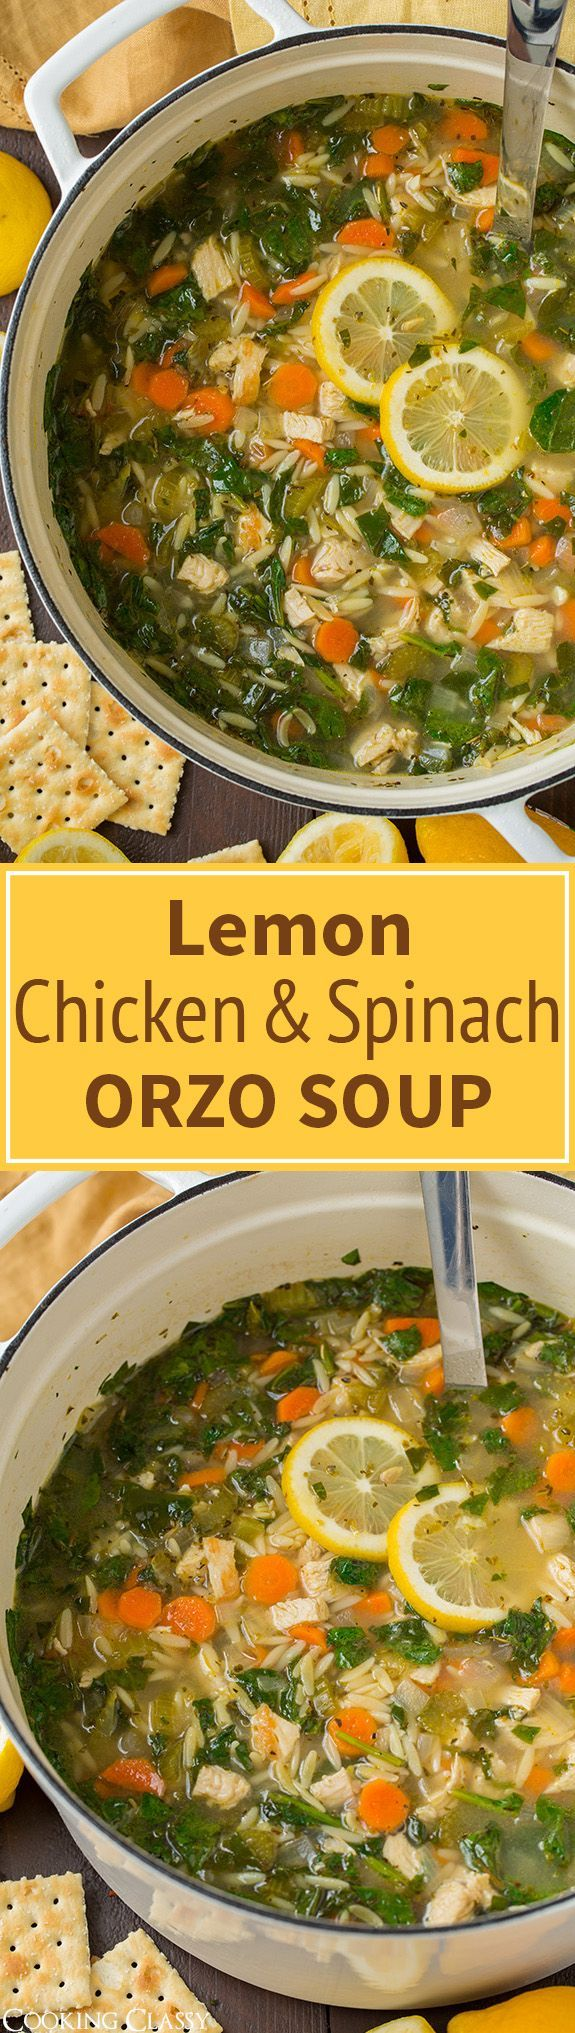 Fall hits and all I want for dinner is soup! Every and any kind of soup. One of my go to soups is chicken noodle soup but I decided I wanted to try a diffe